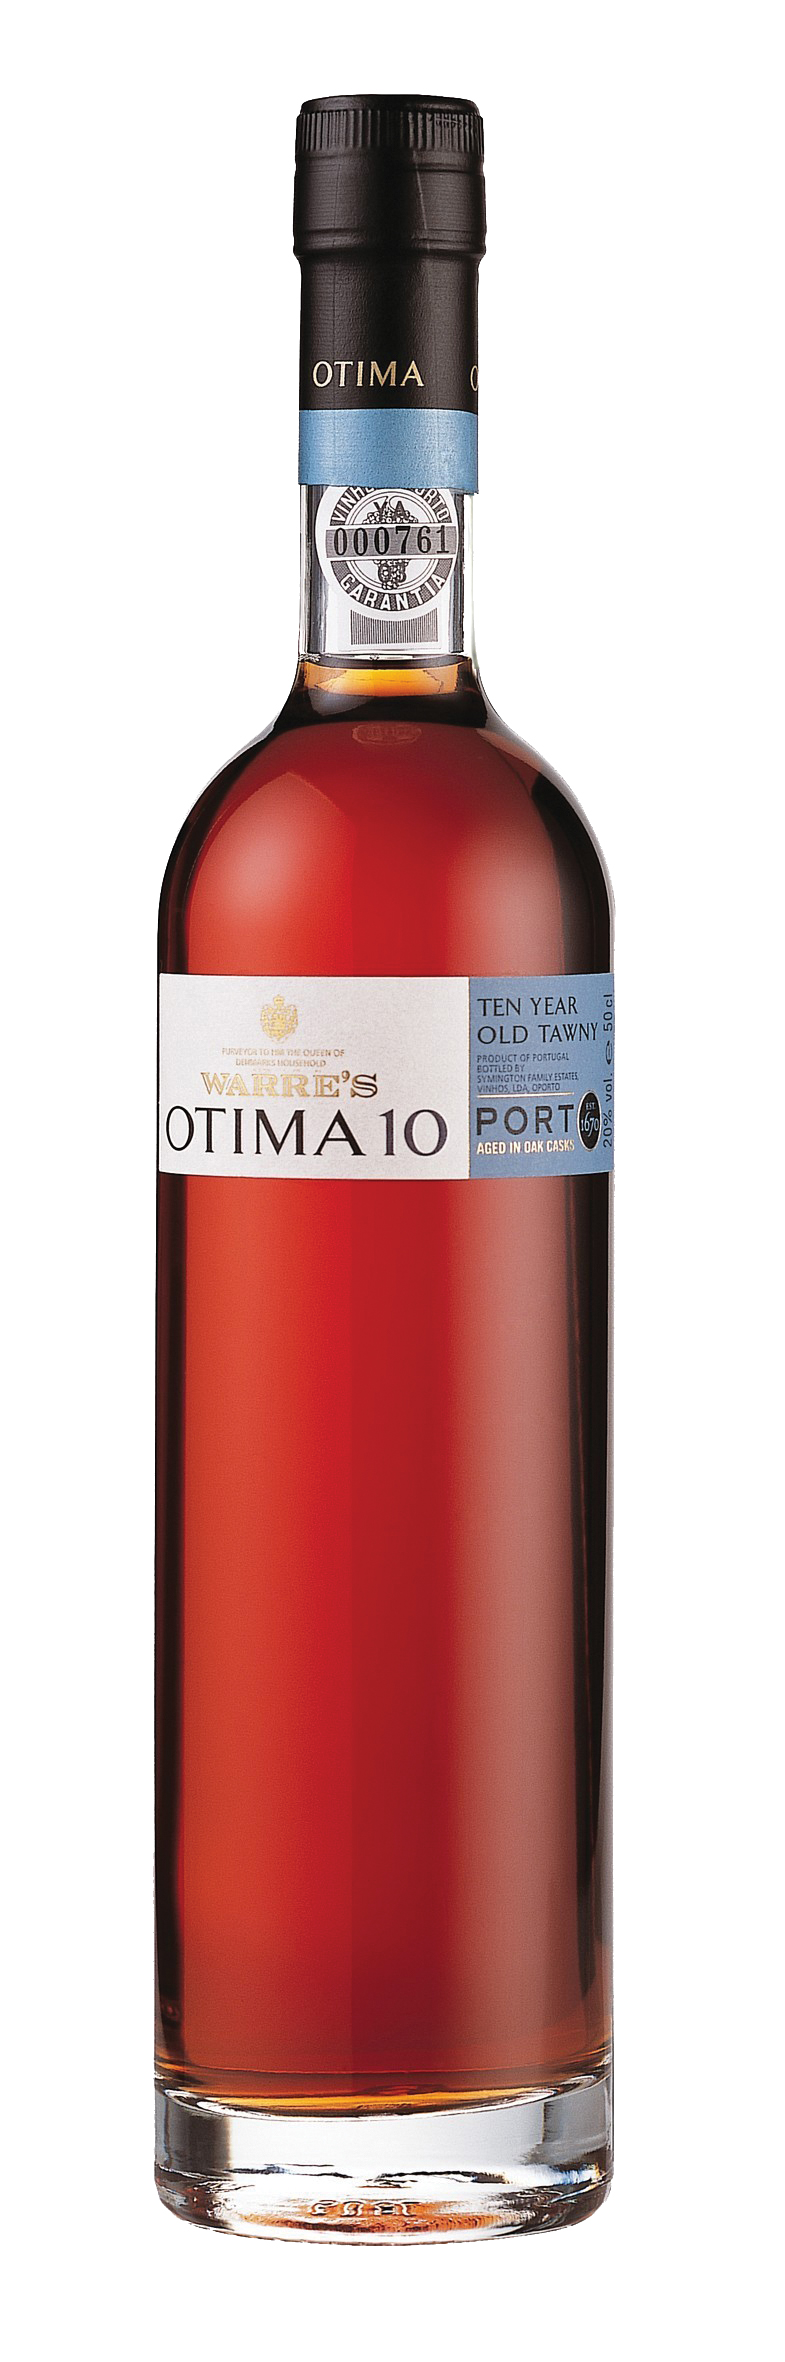 California Wine Of The Week Warre S Otima 10 Year Old Tawny Port A Winter Warmer Botellas De Vino Vino Rosado Copas De Vino